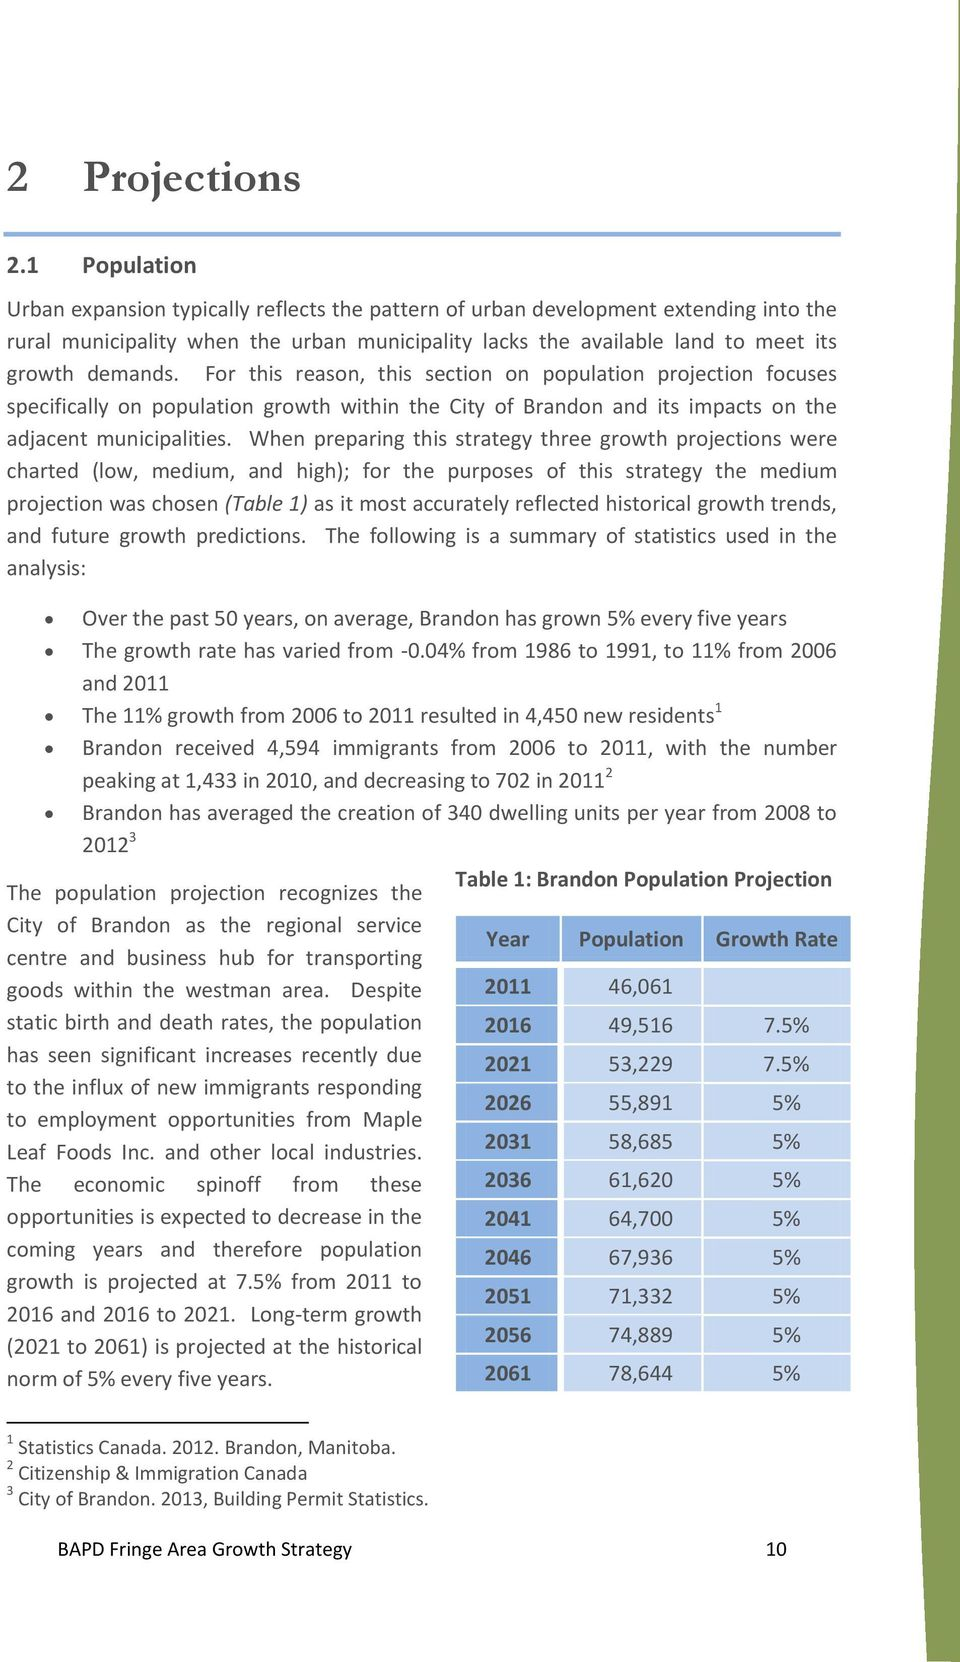 For this reason, this section on population projection focuses specifically on population growth within the City of Brandon and its impacts on the adjacent municipalities.